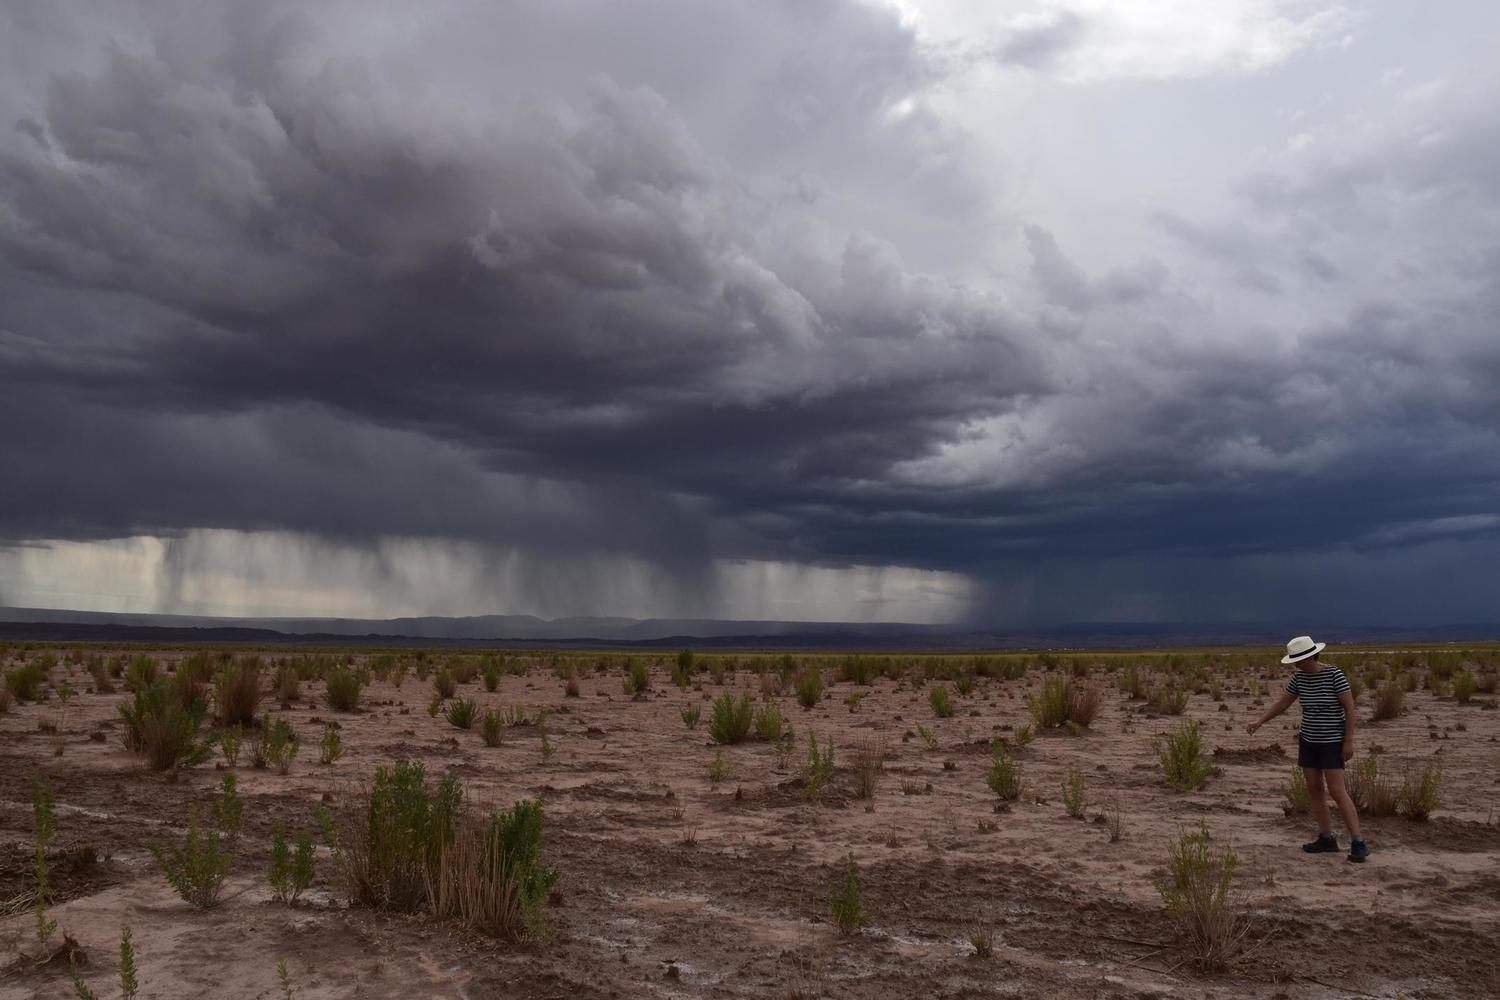 Rare thunderstorms darken the skies above the Atacama